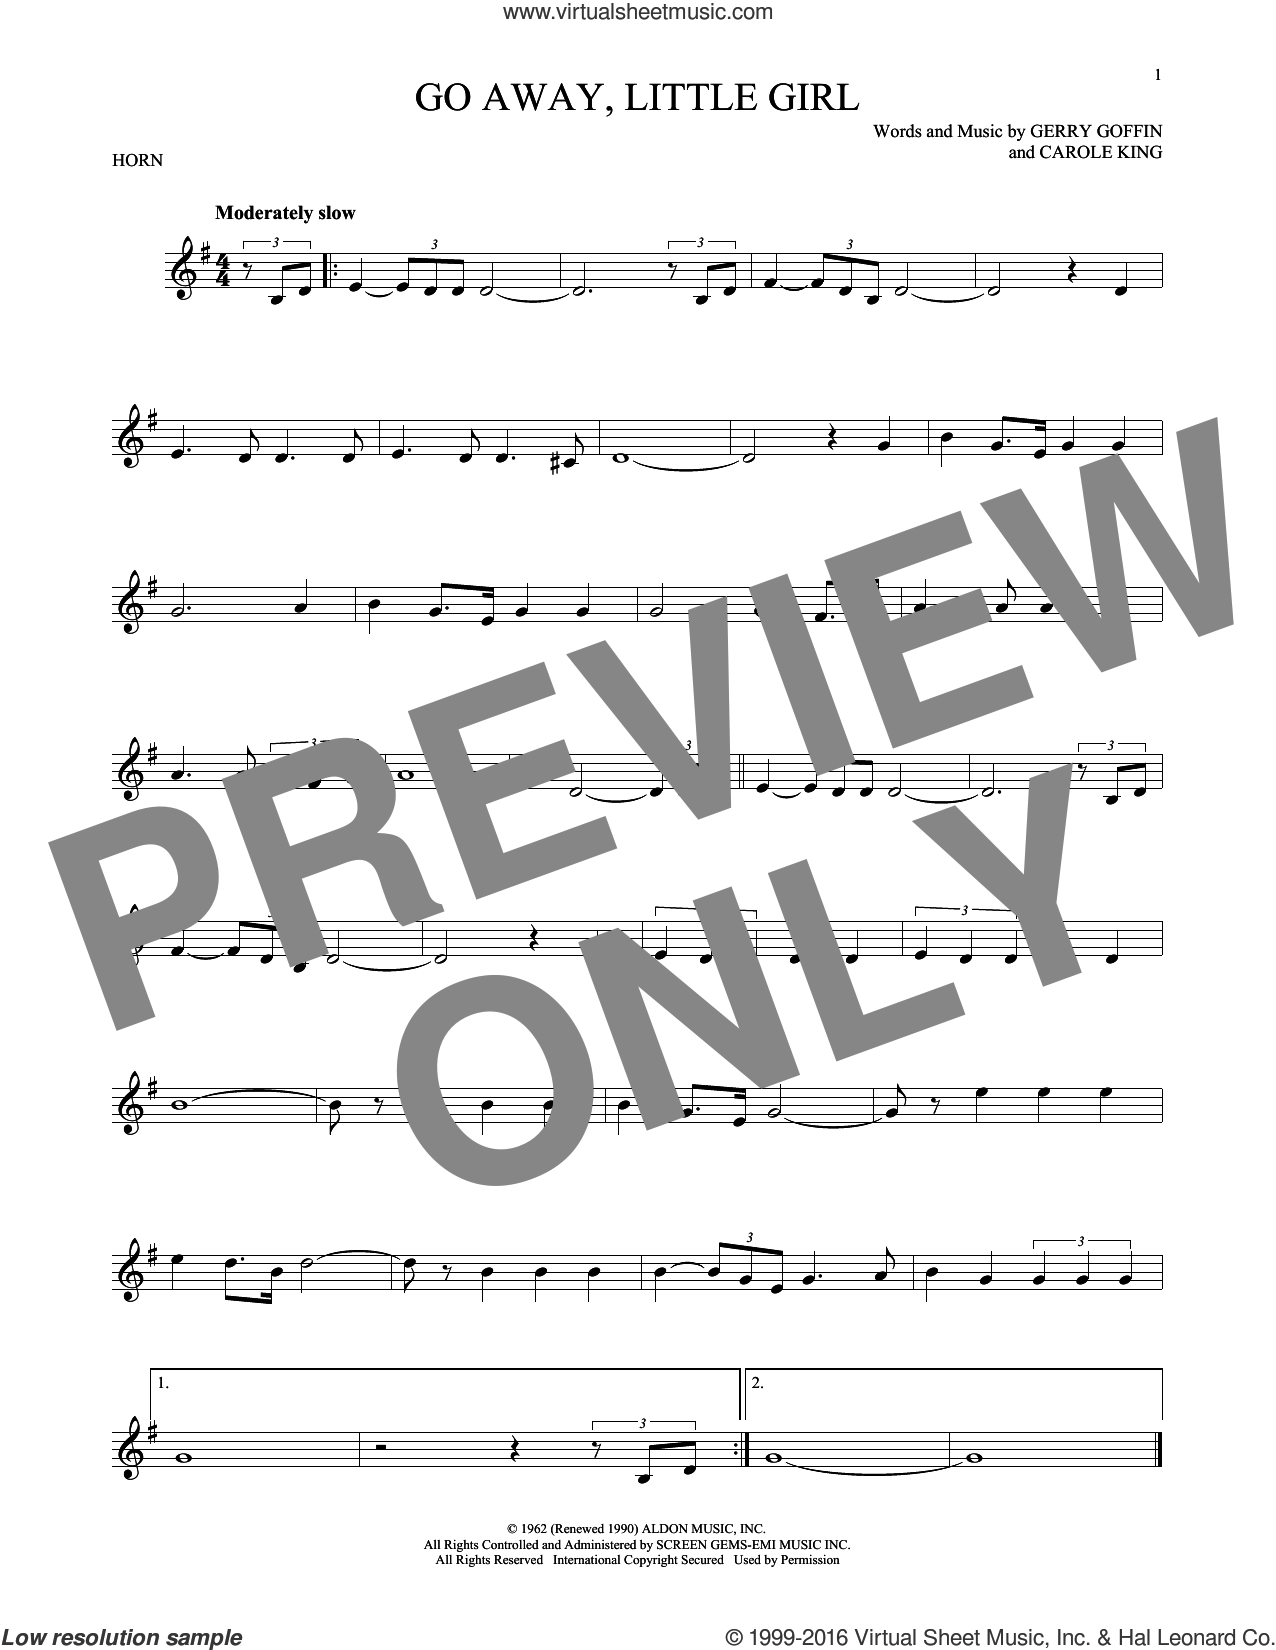 Go Away, Little Girl sheet music for horn solo by Gerry Goffin, Donny Osmond and Carole King. Score Image Preview.